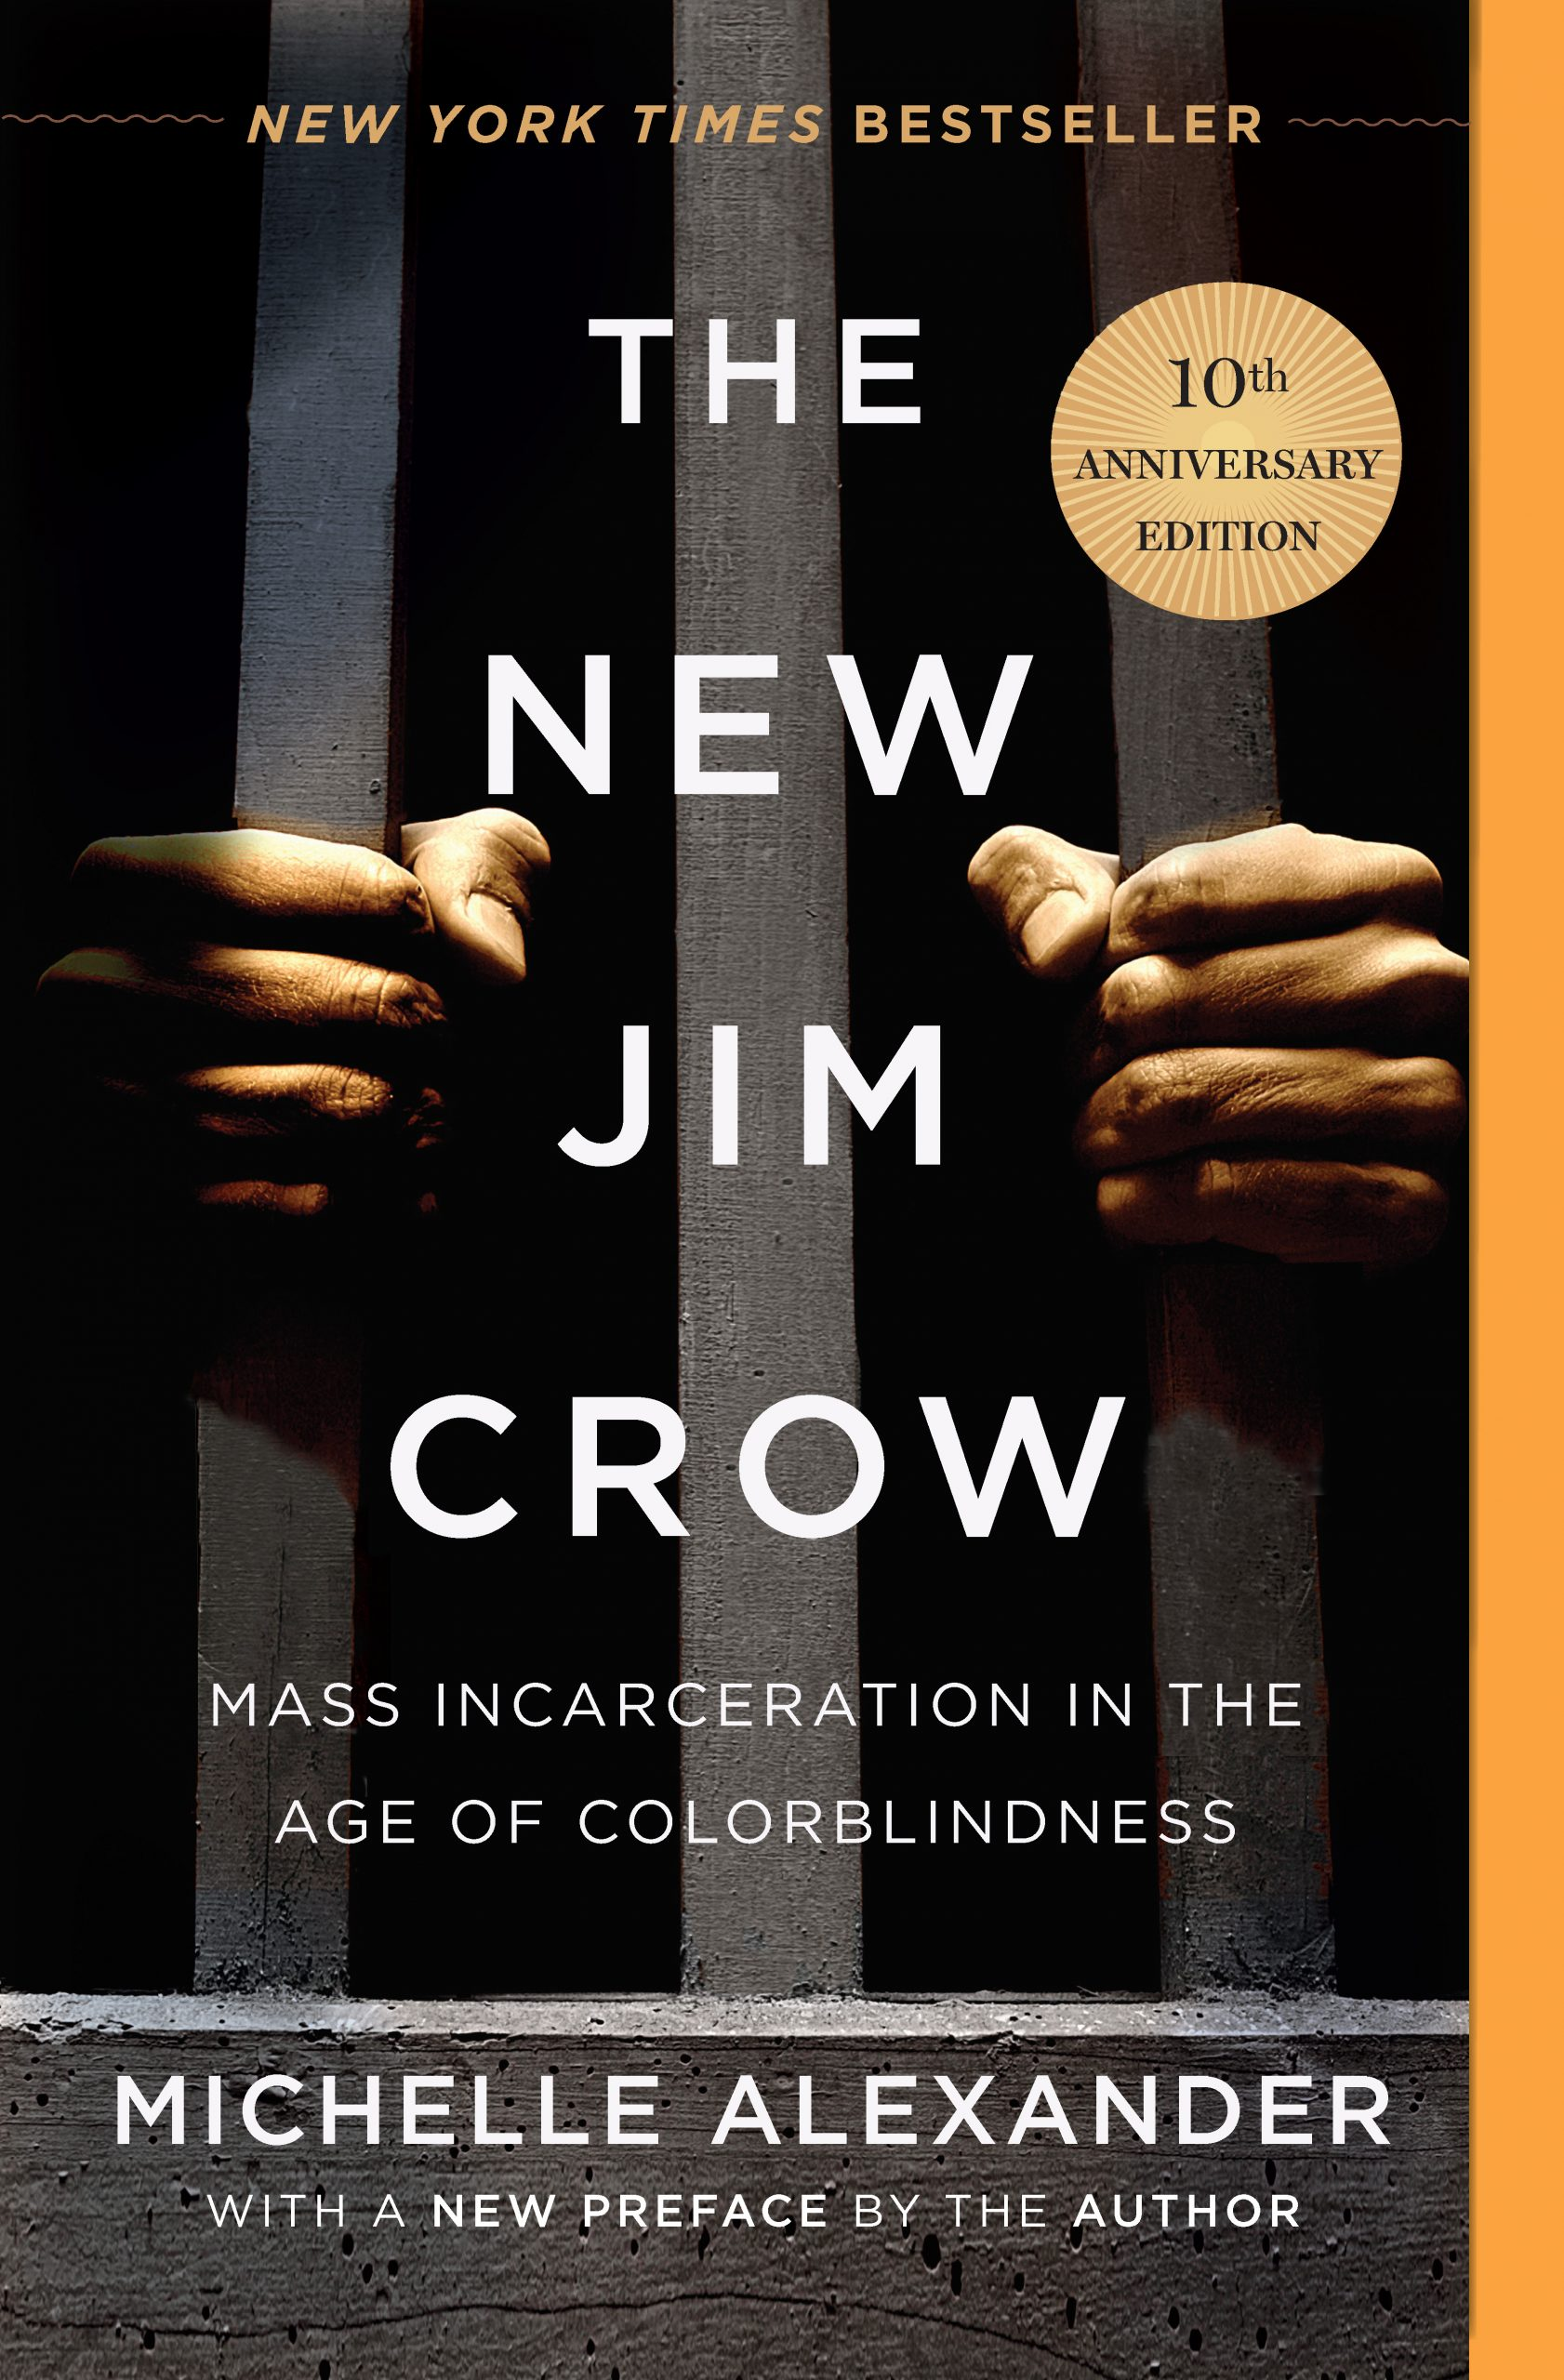 The New Jim Crow by Michelle Alexander, 10th anniversary edition